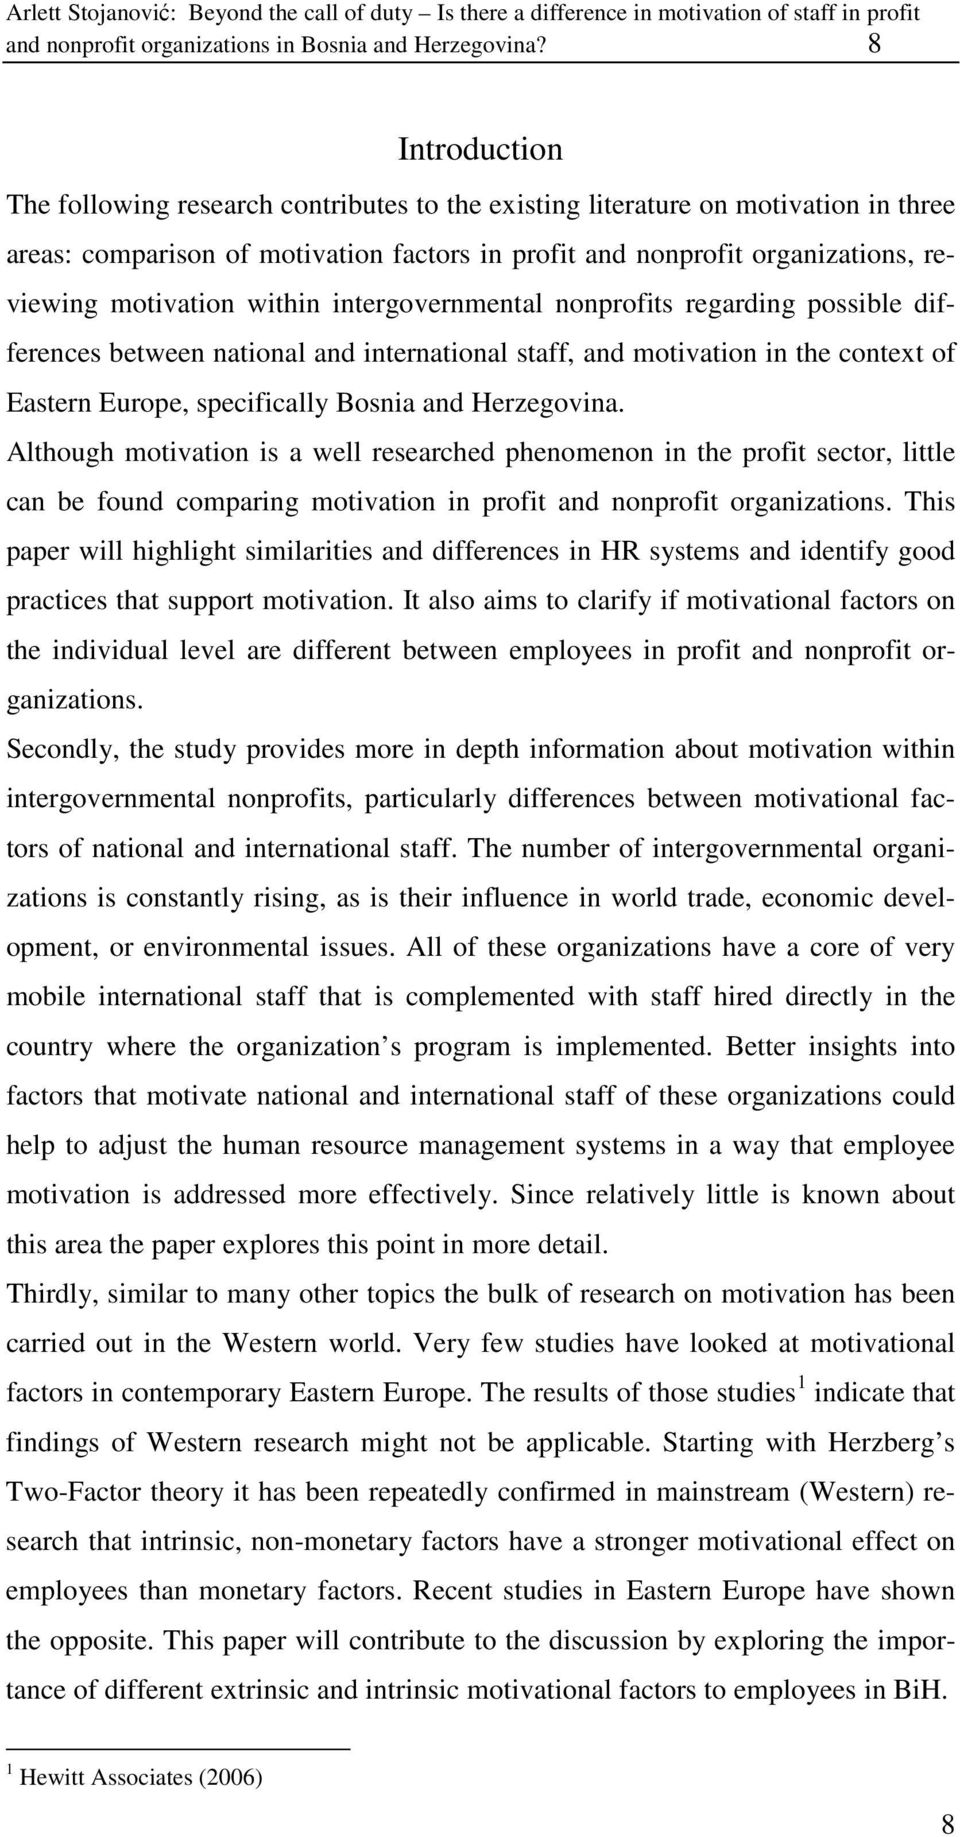 within intergovernmental nonprofits regarding possible differences between national and international staff, and motivation in the context of Eastern Europe, specifically Bosnia and Herzegovina.